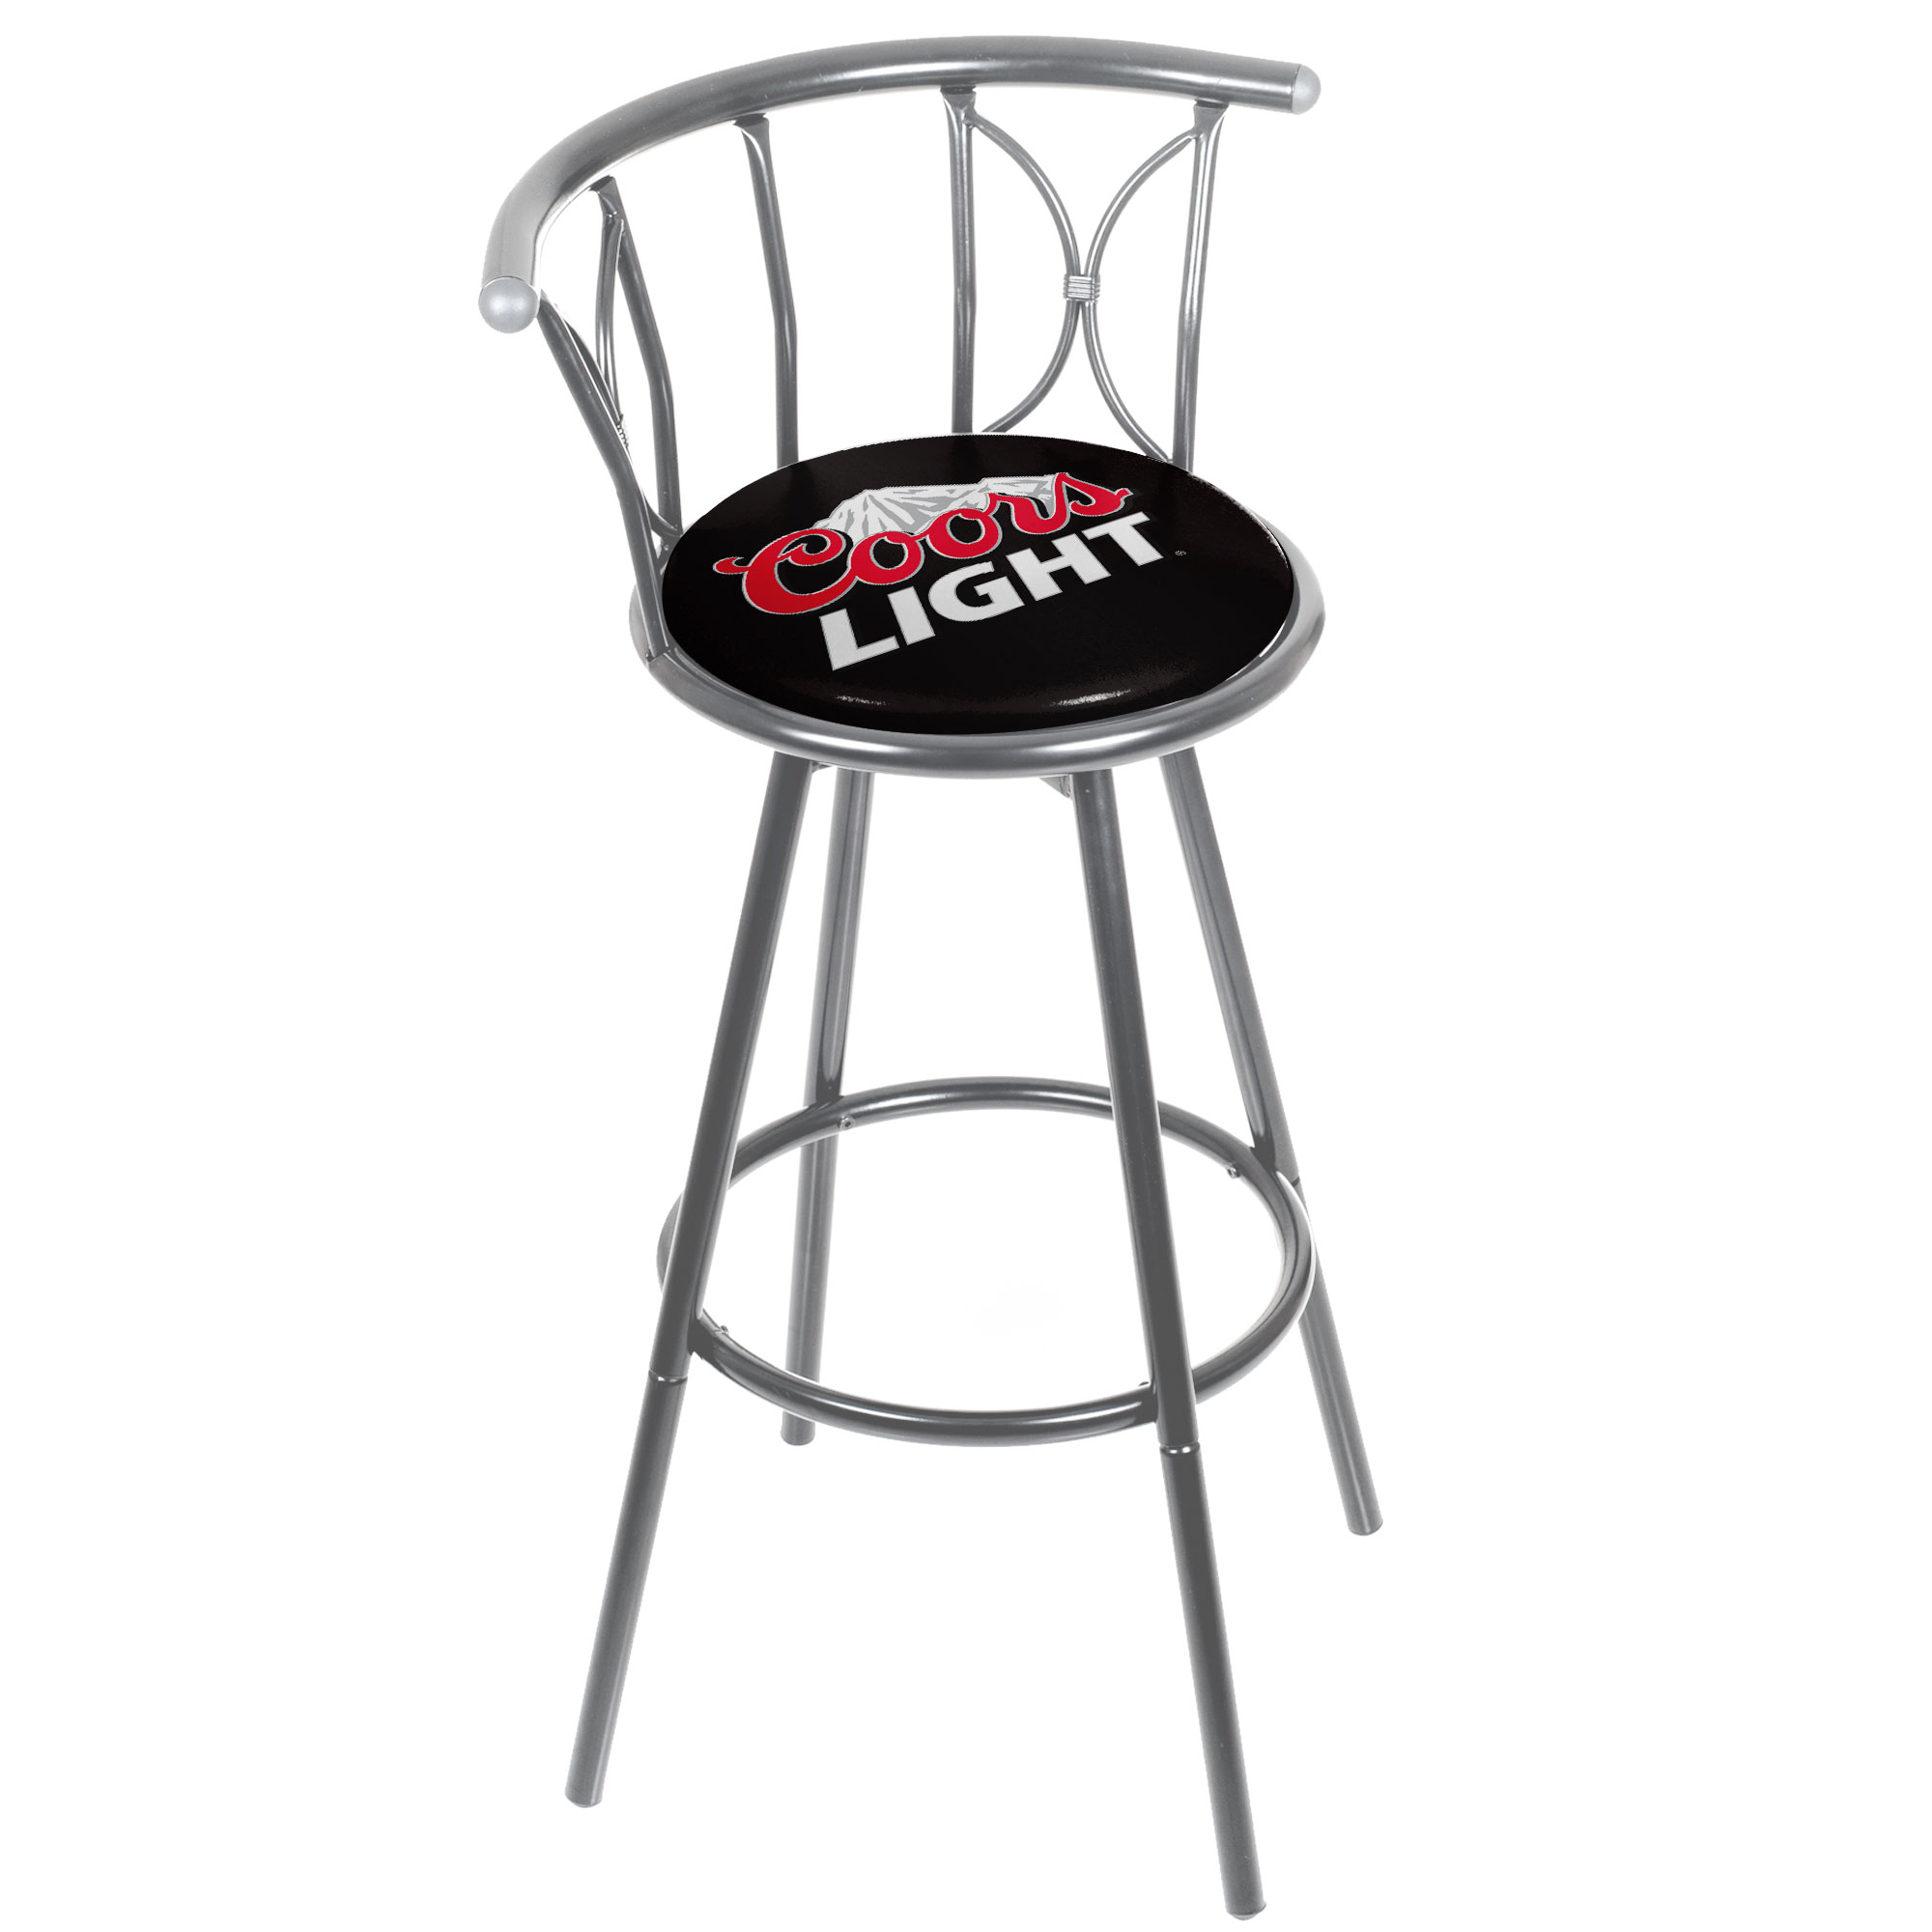 Coors Light Weatherproof Padded Outdoor Bar Stool Silver